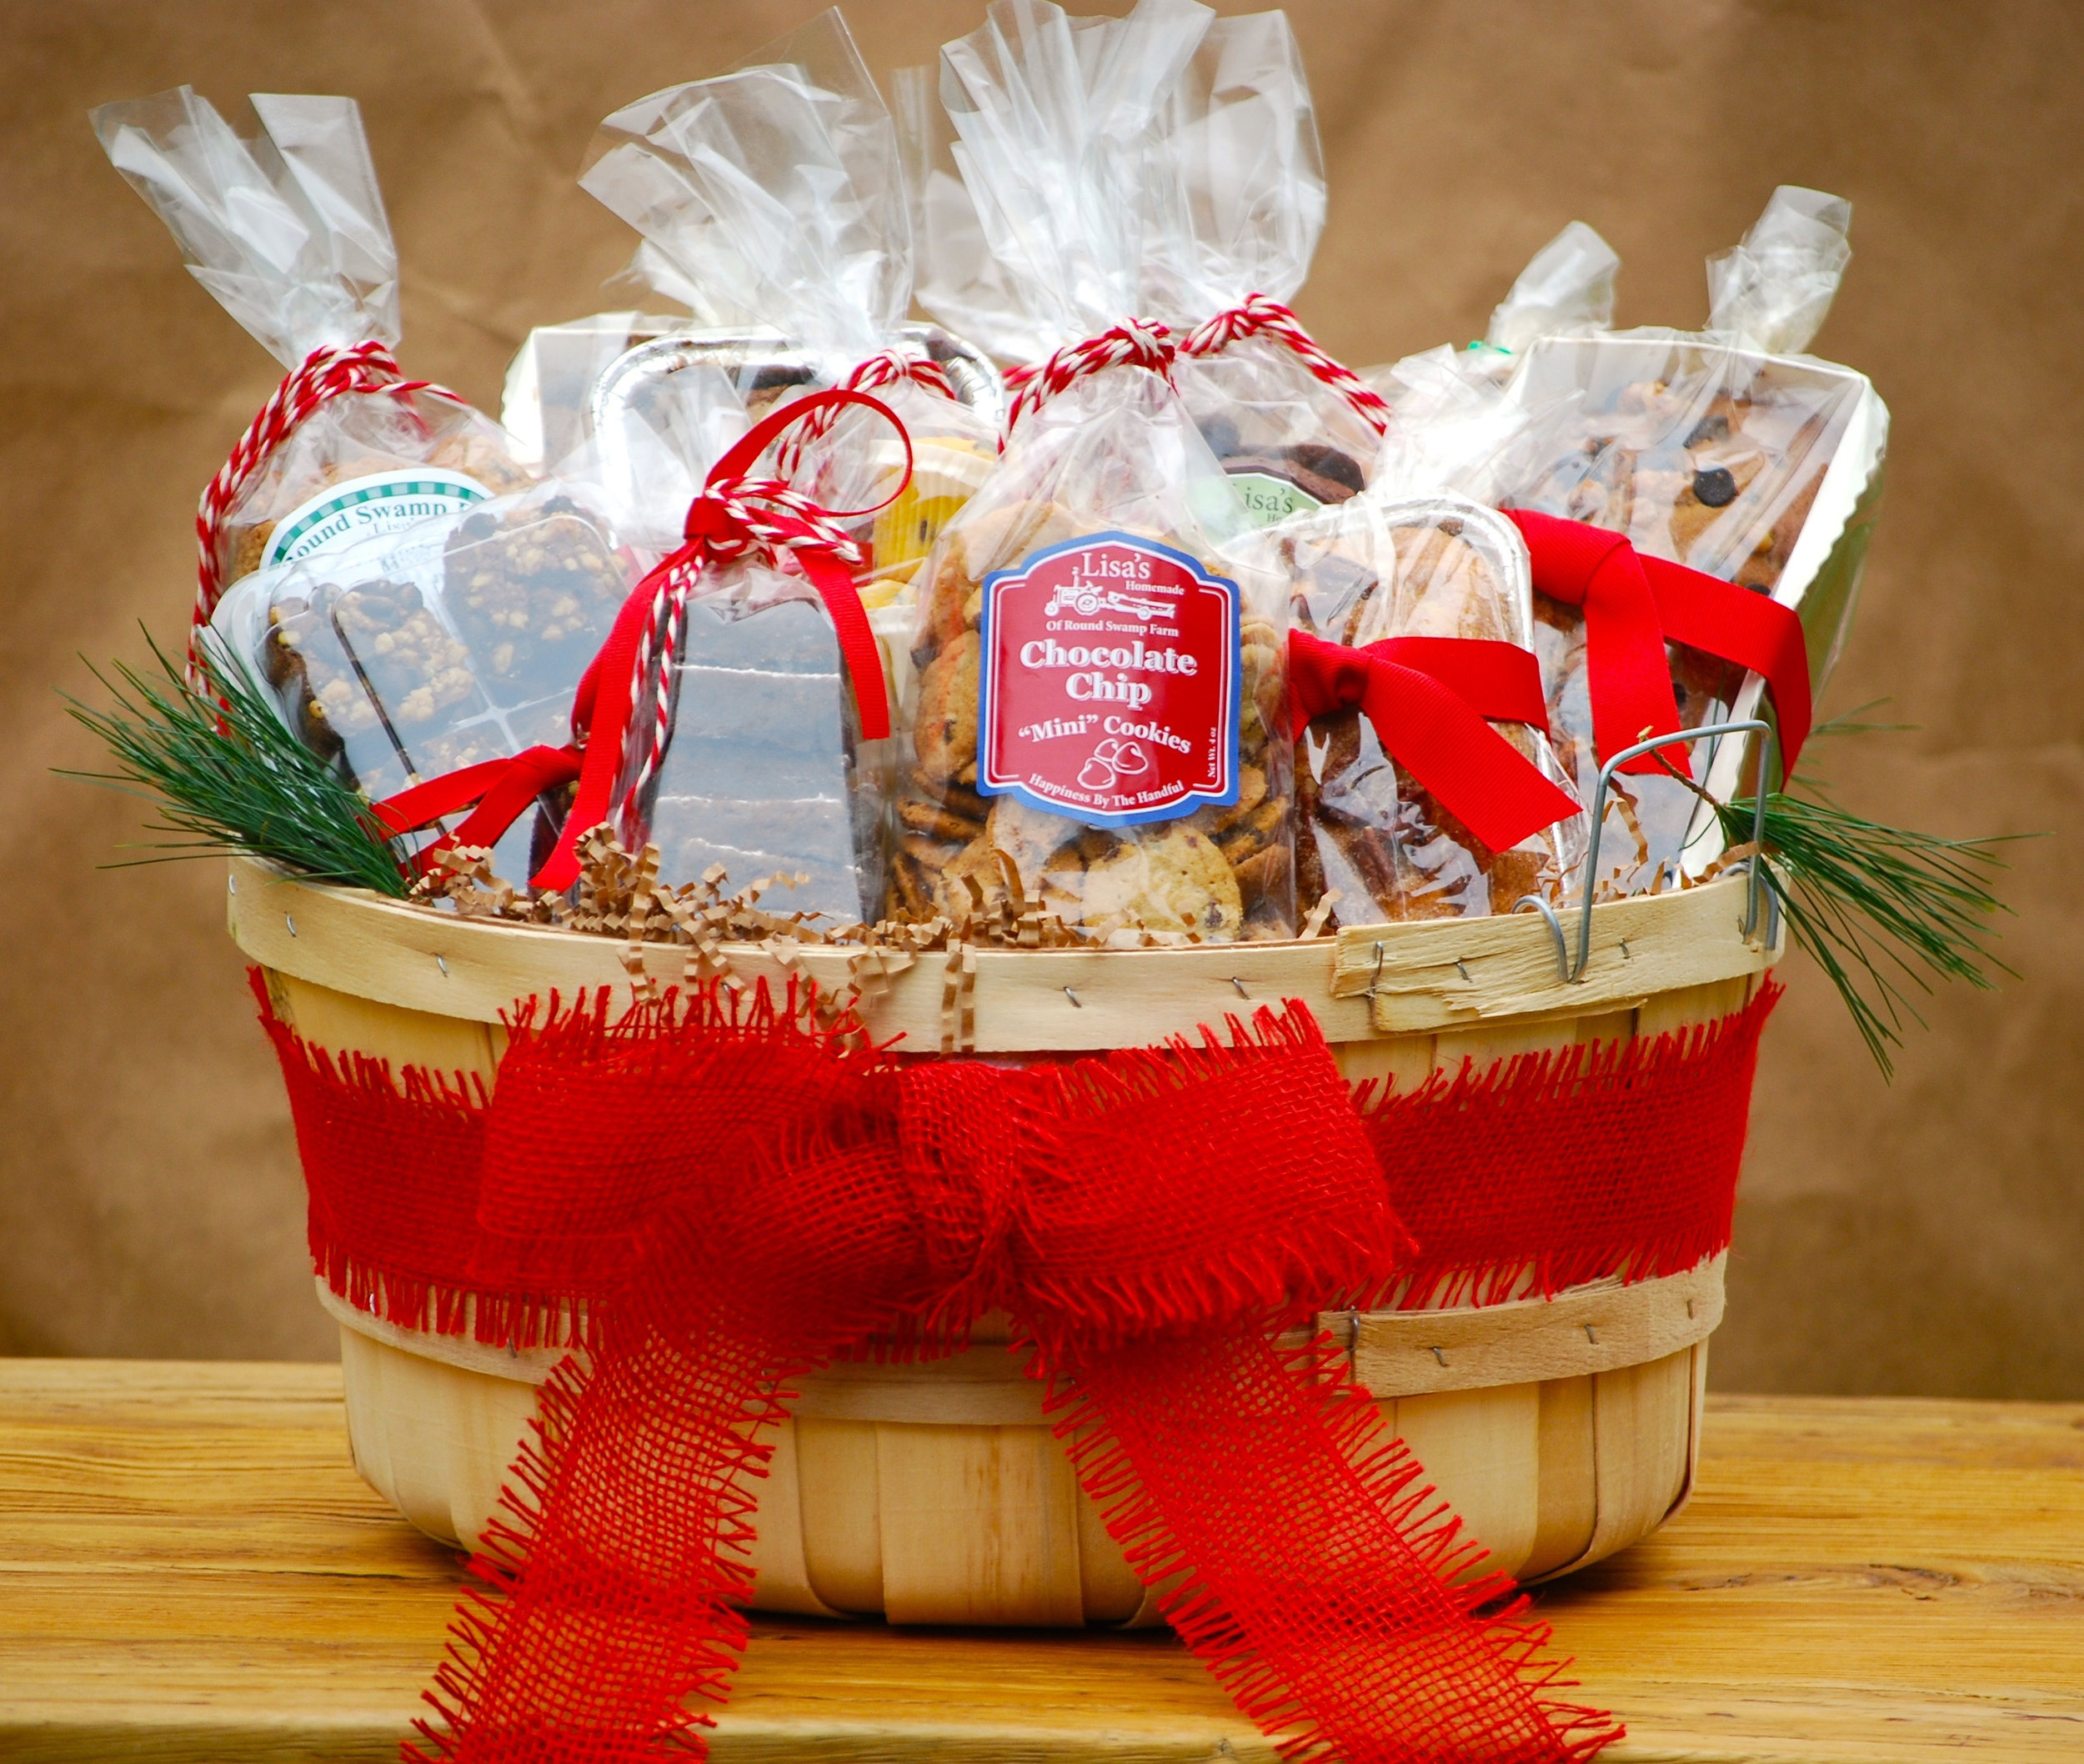 Deluxe Holiday Baked Goods Basket